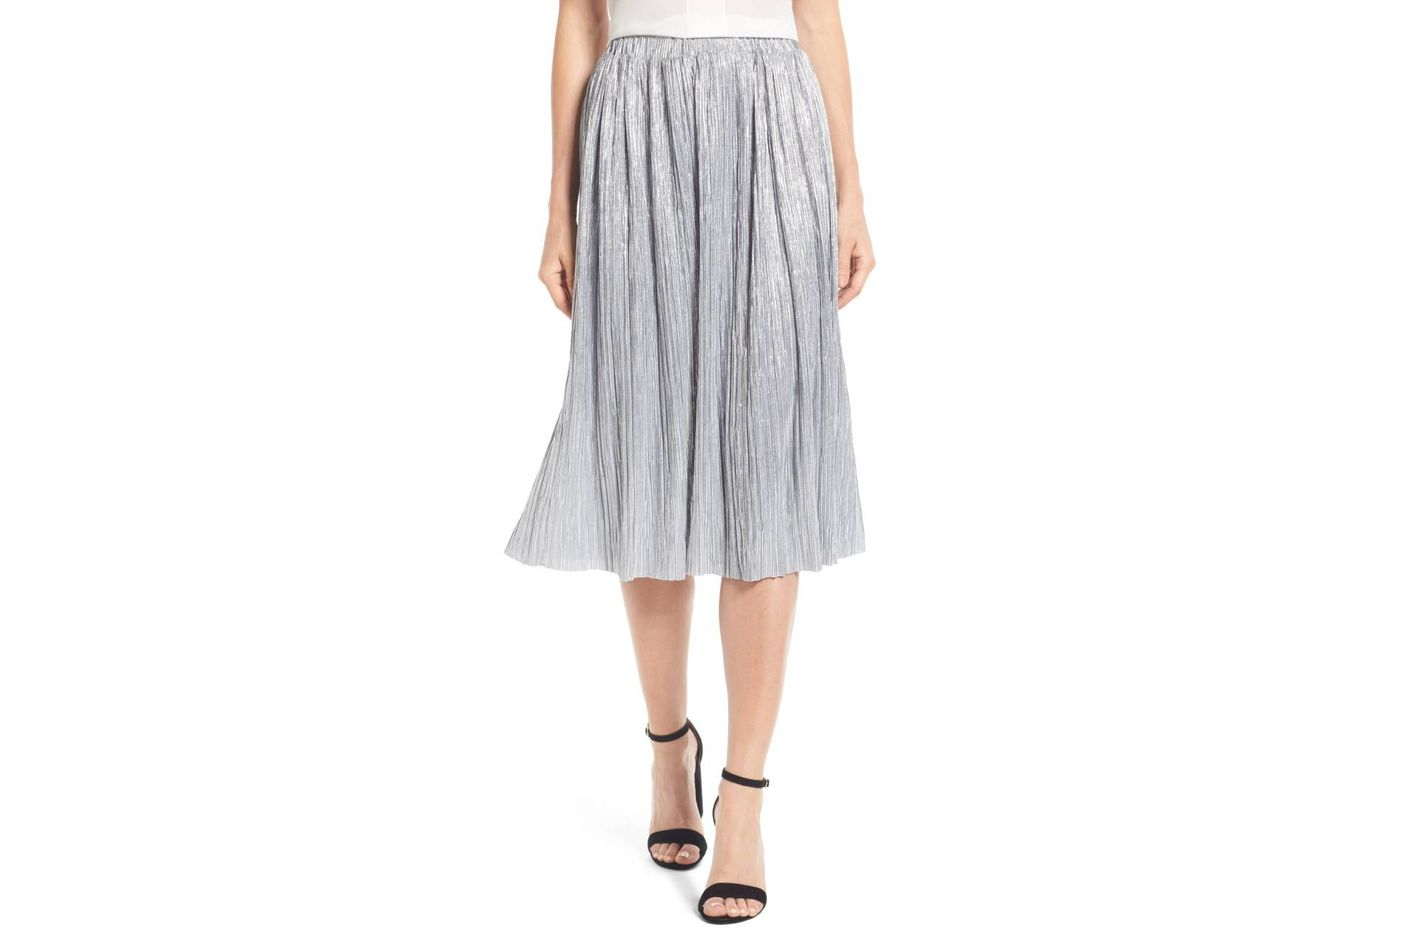 Vince Camuto Pleat Foiled Knit Skirt